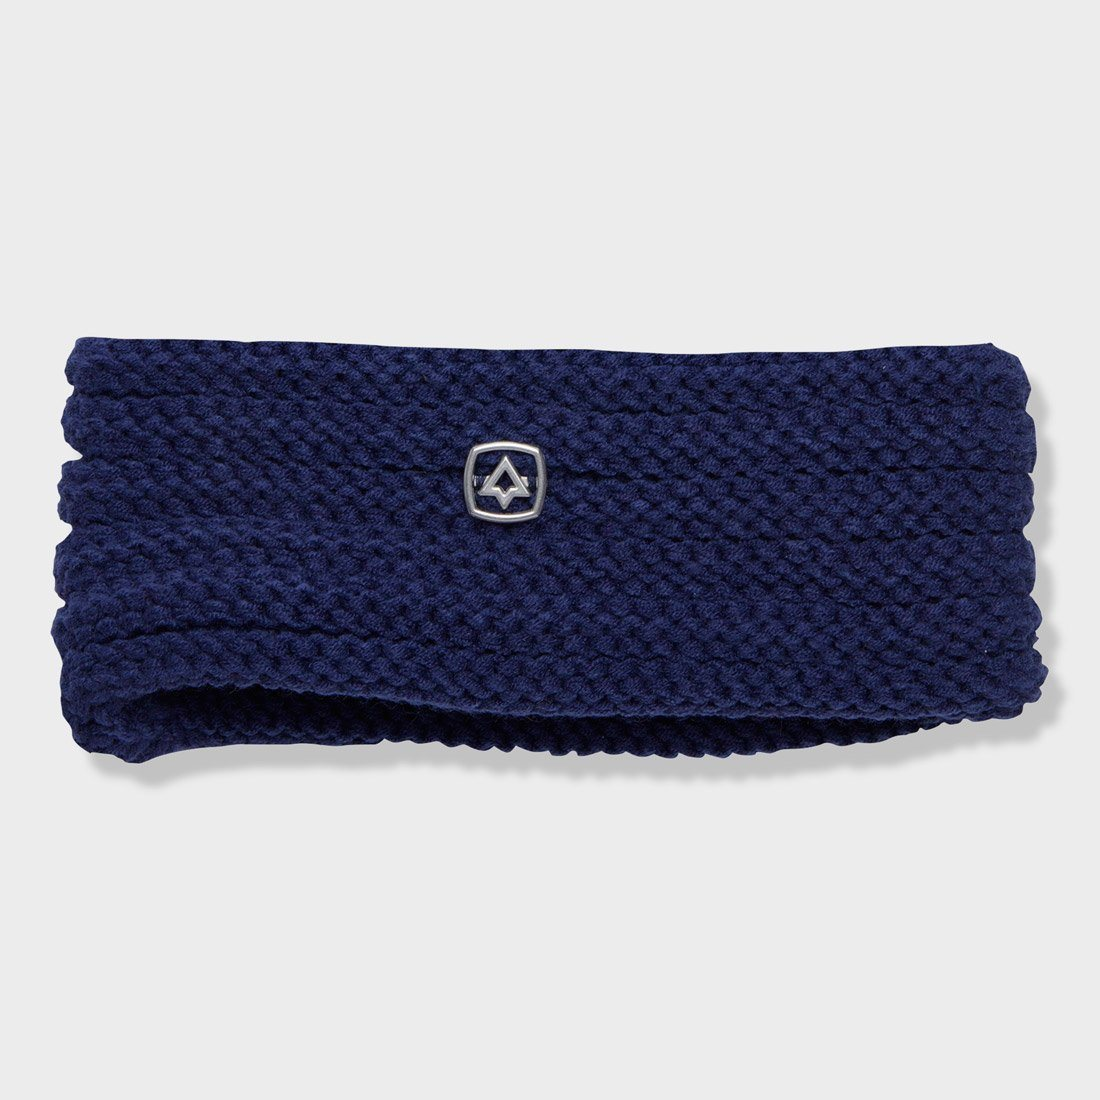 Coal Women's The Myrtle Headband Navy